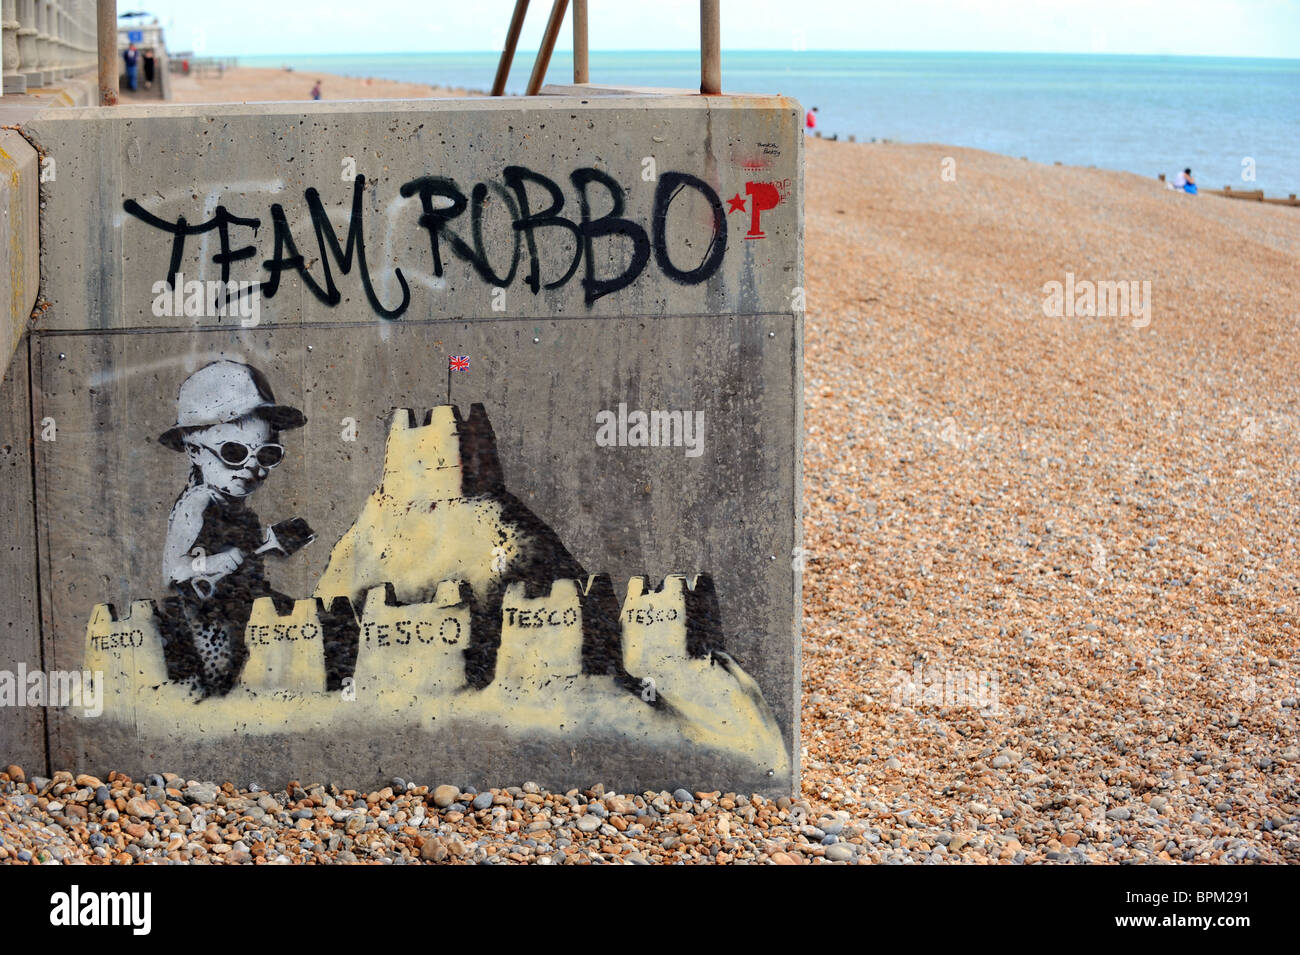 Latest work by Banksy which has appeared on St Leonard's